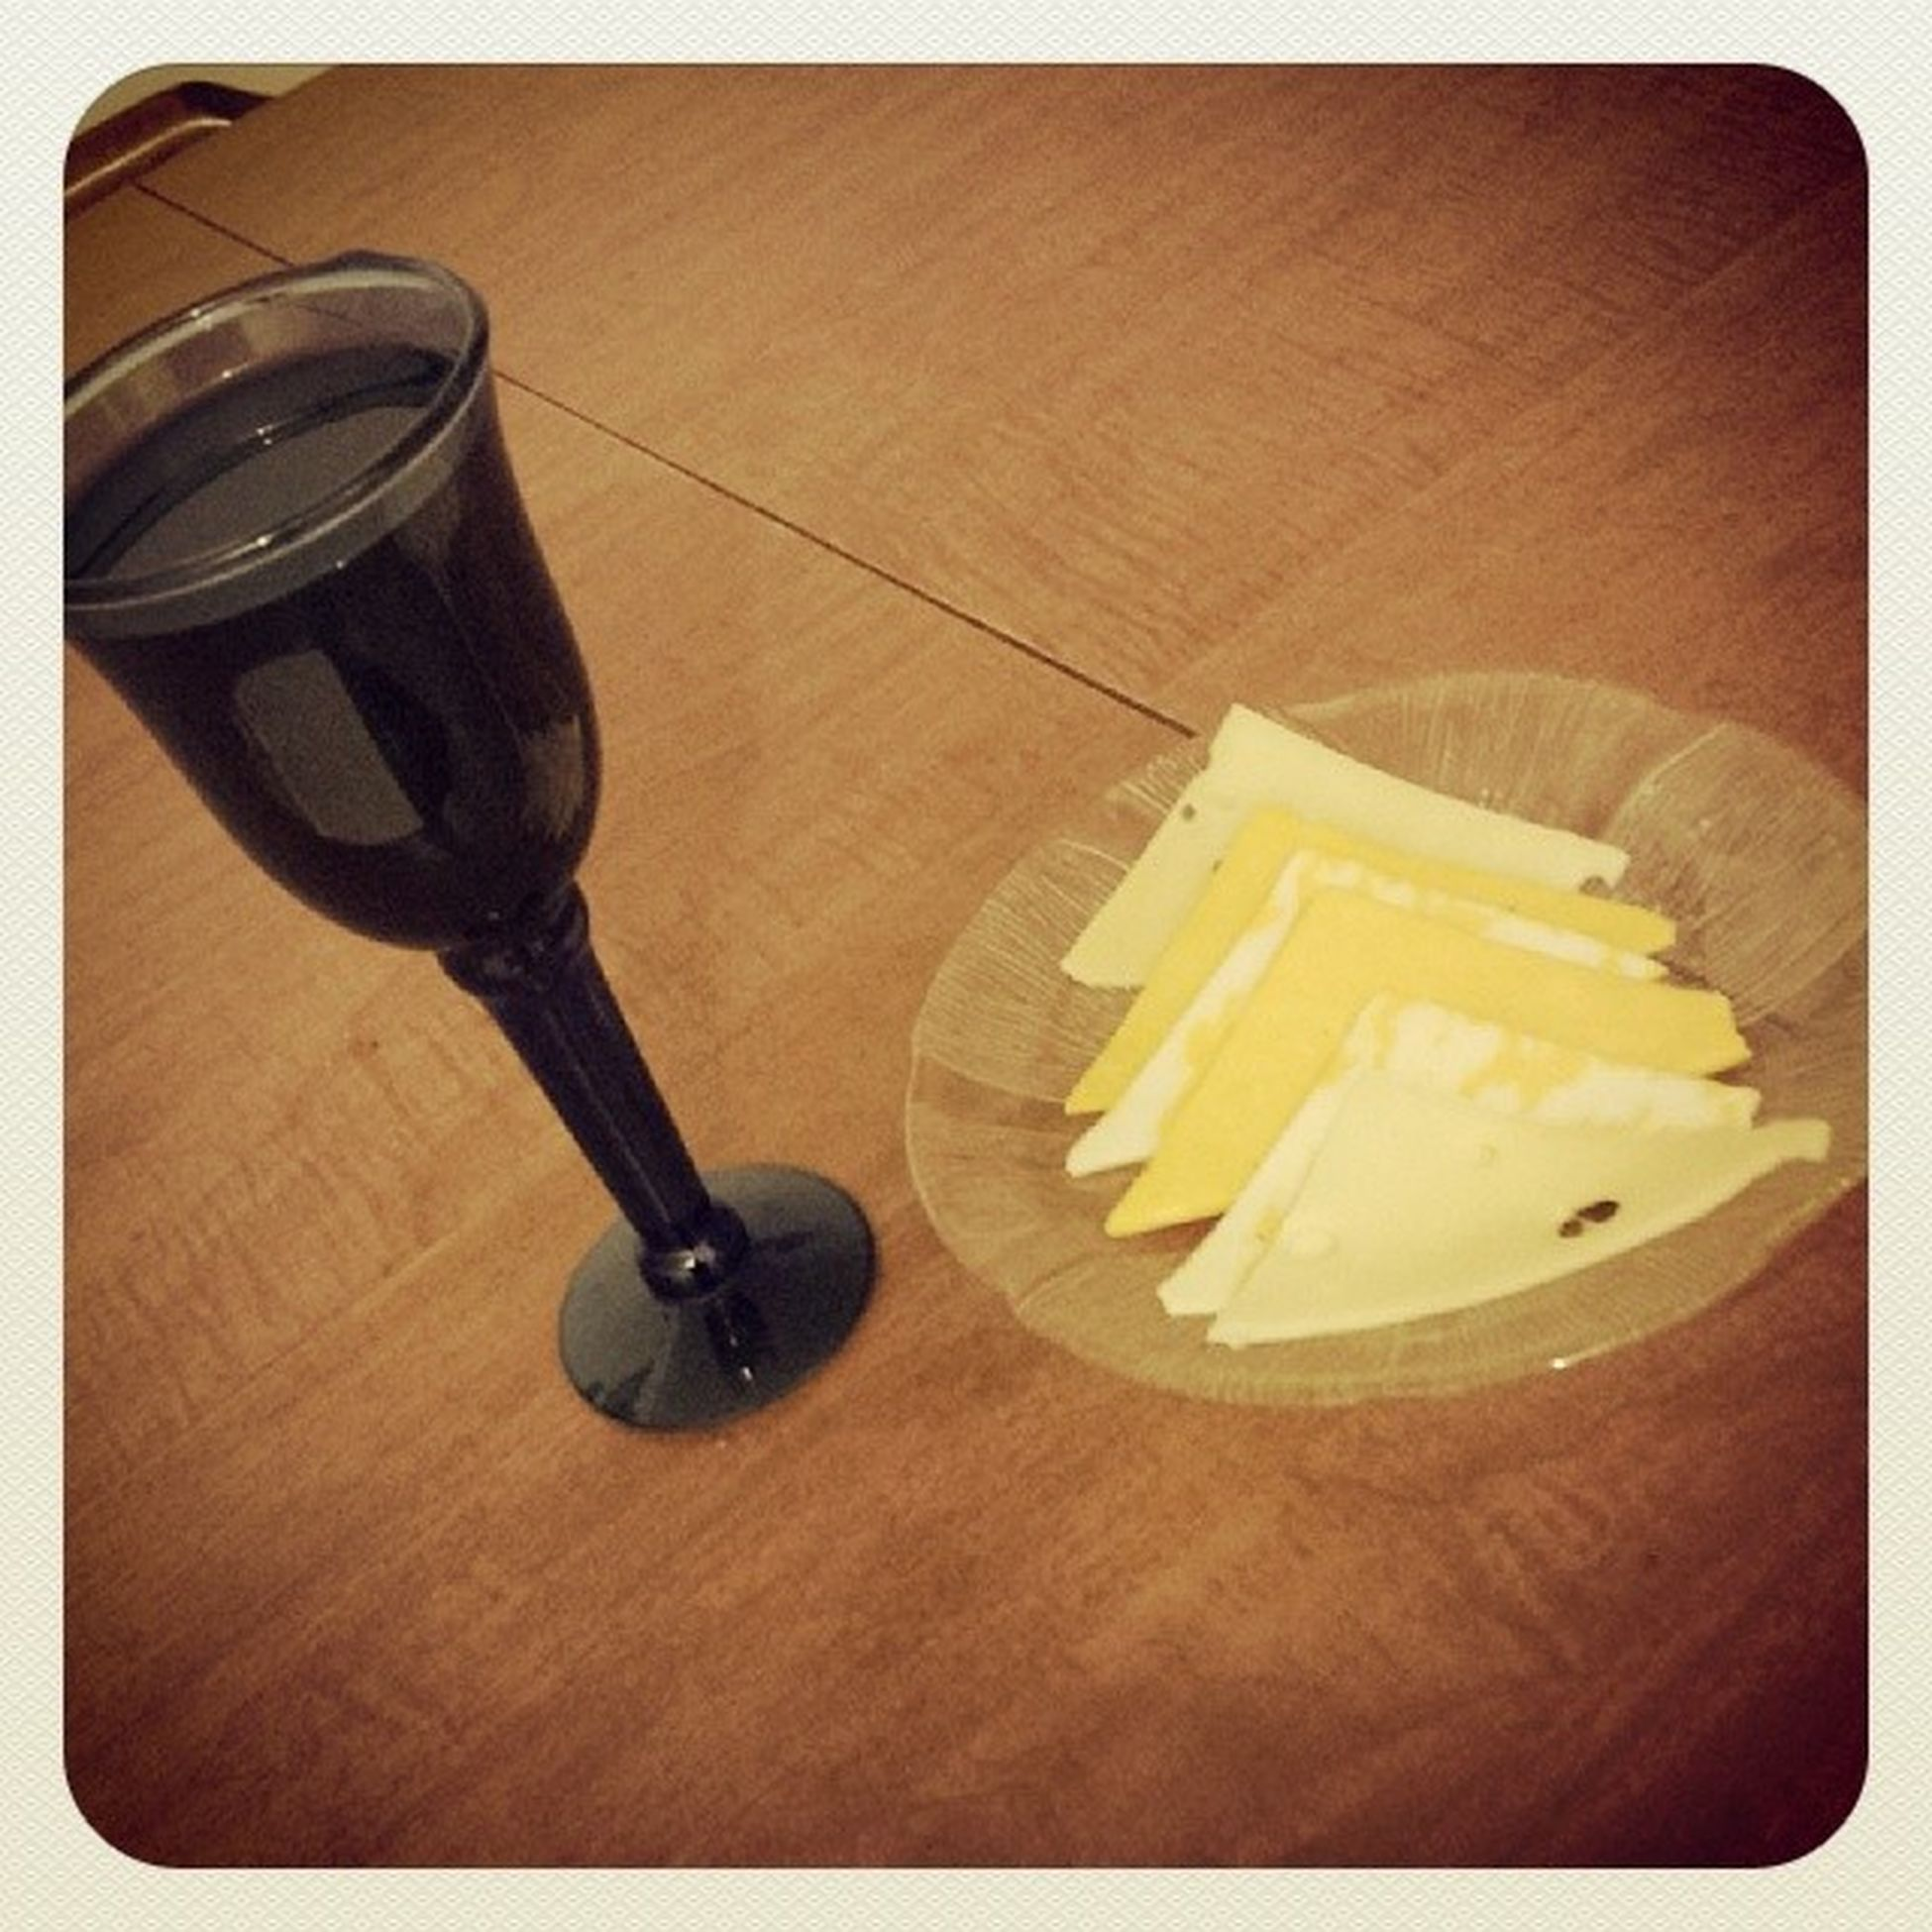 Just a little bedtime snack. Wineandcheese Yummm  Myfavcombo